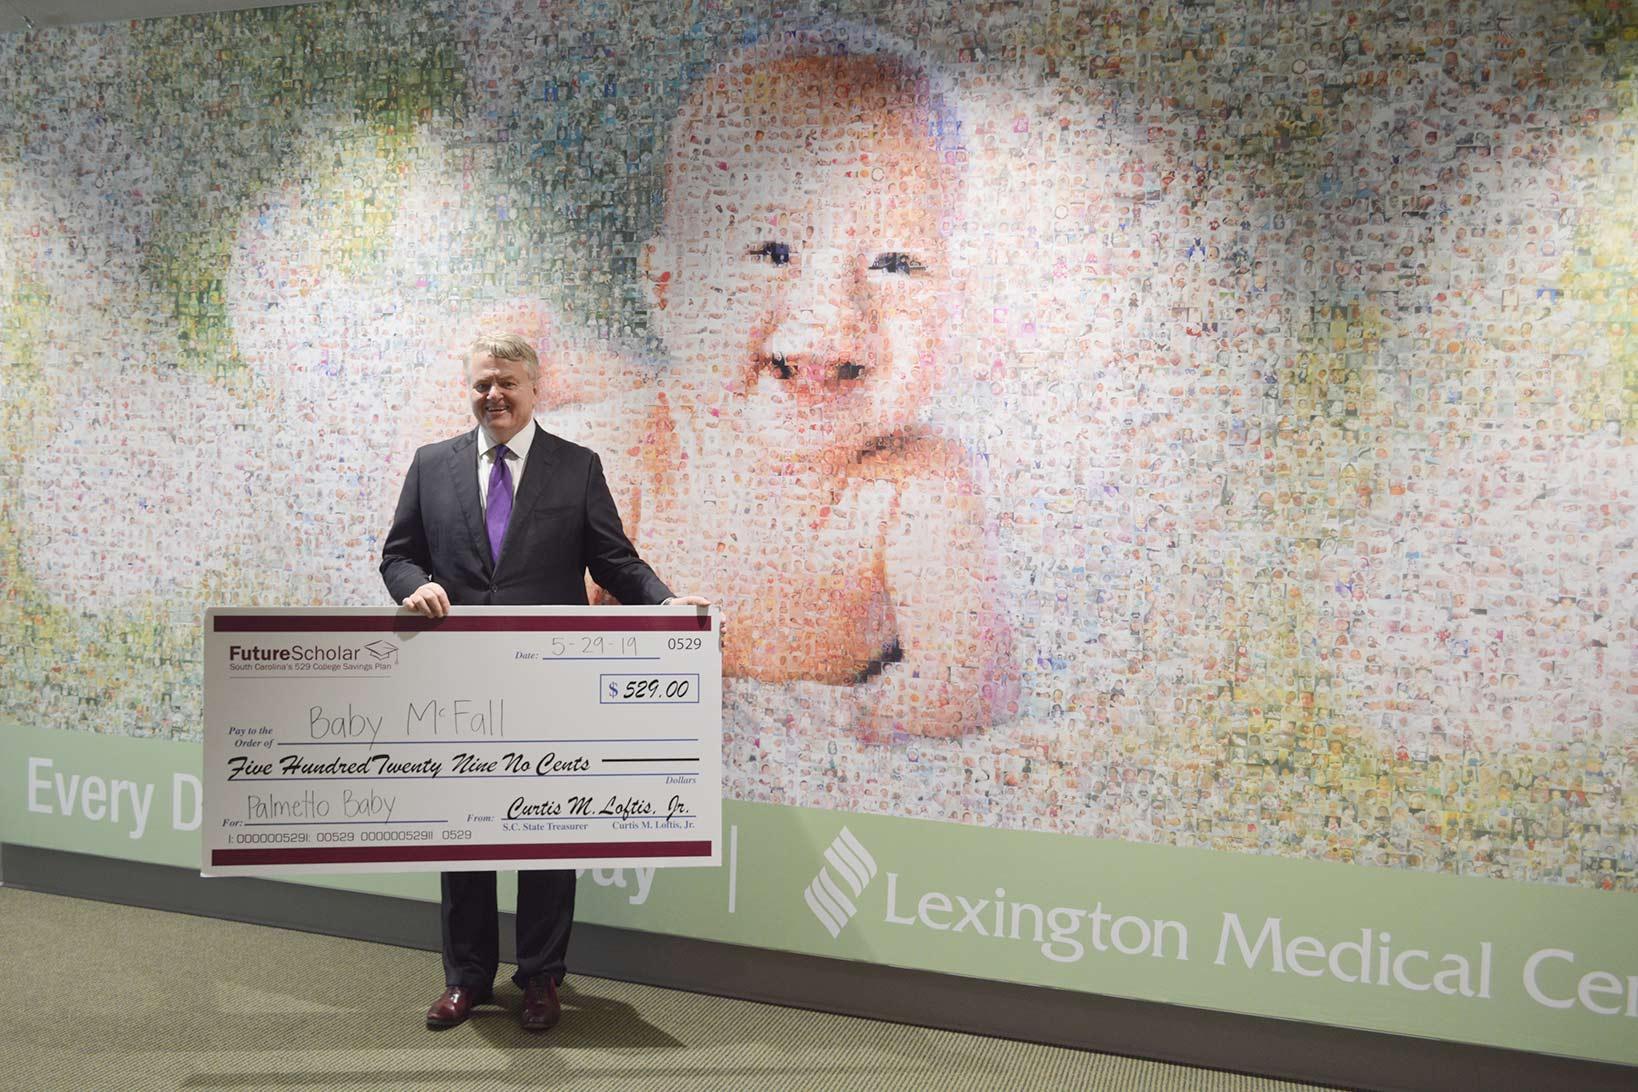 Treasurer Loftis holding a large check addressed to Baby McFall posing in front of the baby mosaic in the new patient care tower.